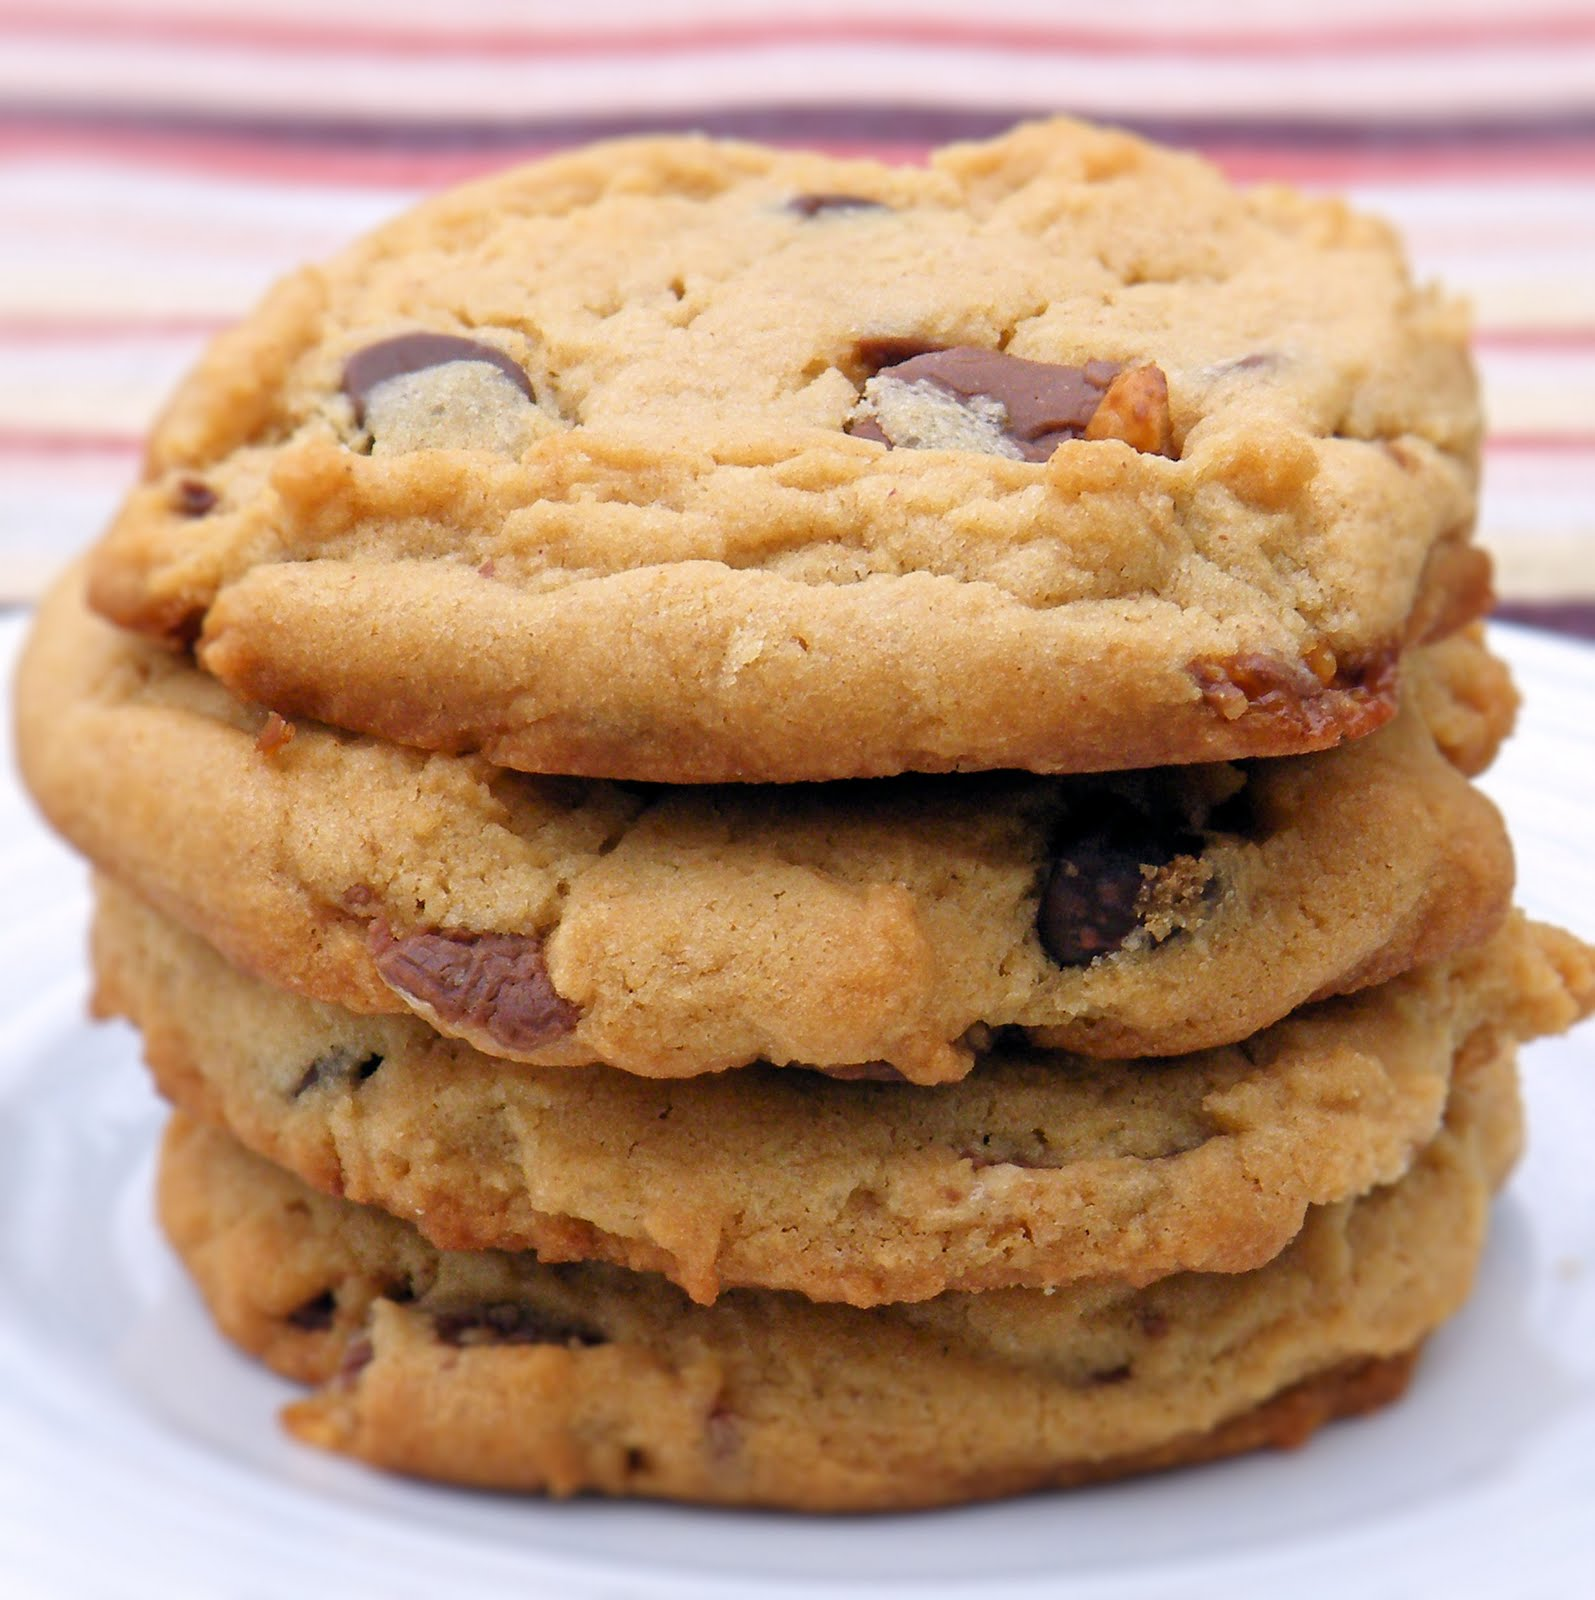 Vittles and Bits: Peanut Butter Chocolate Chip Snickers Cookies